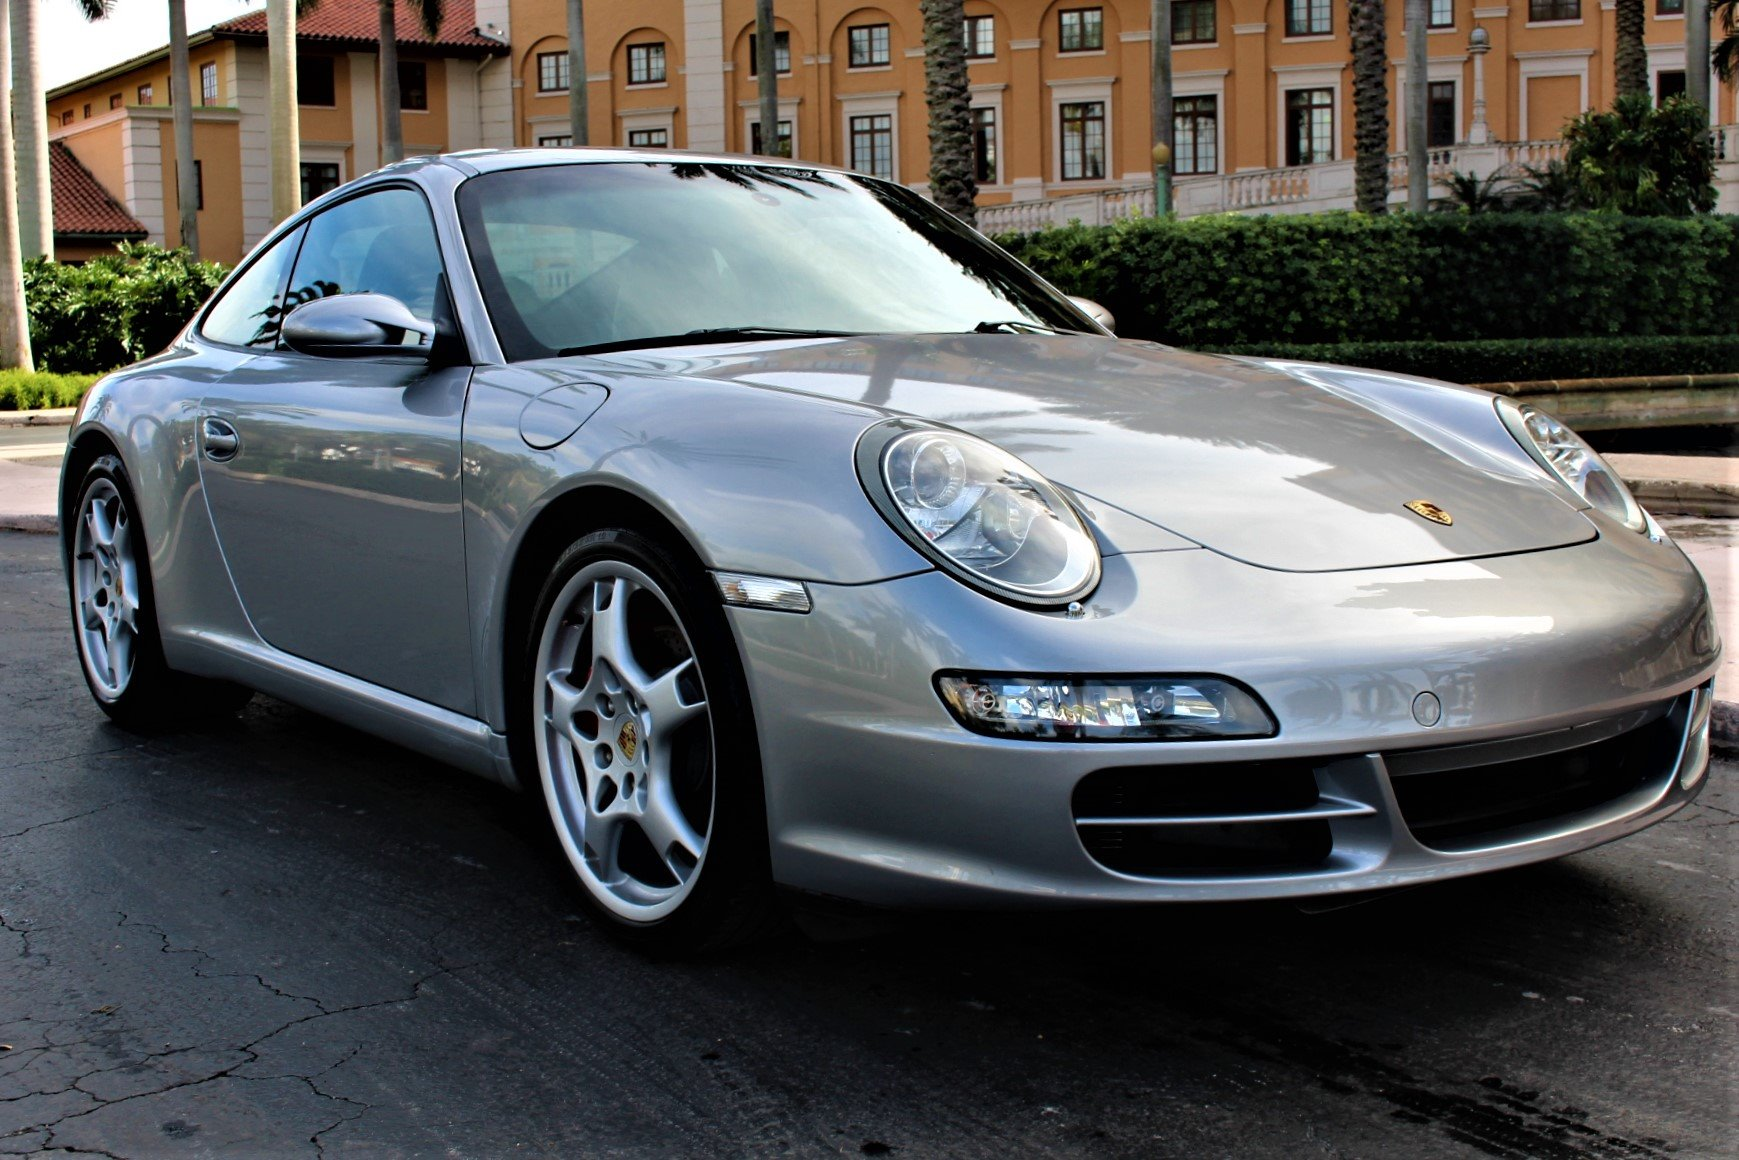 Used 2005 Porsche 911 Carrera S for sale Sold at The Gables Sports Cars in Miami FL 33146 3